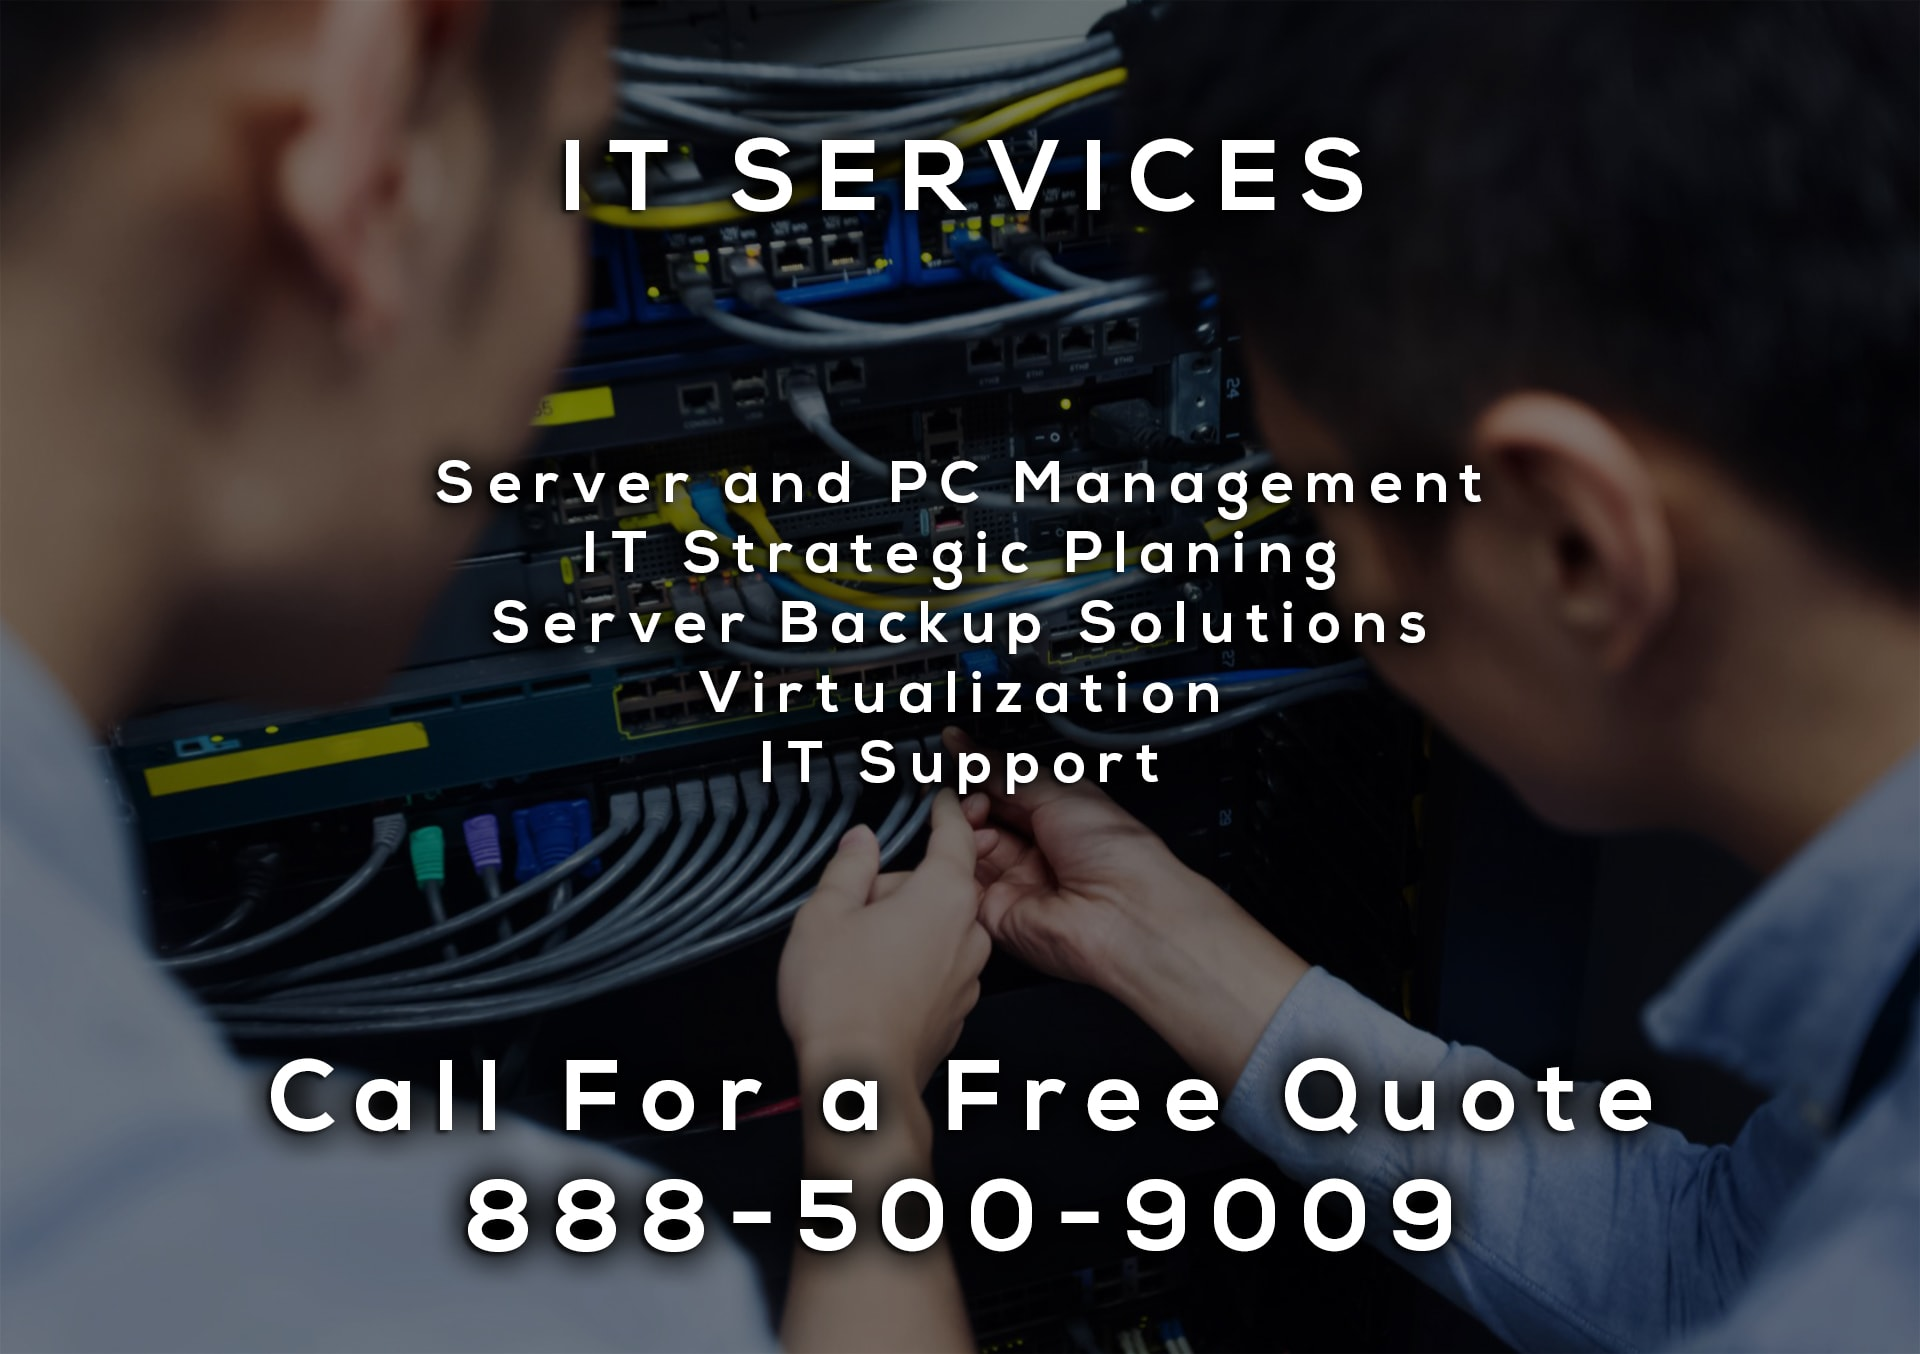 IT Services in Twentynine Palms CA